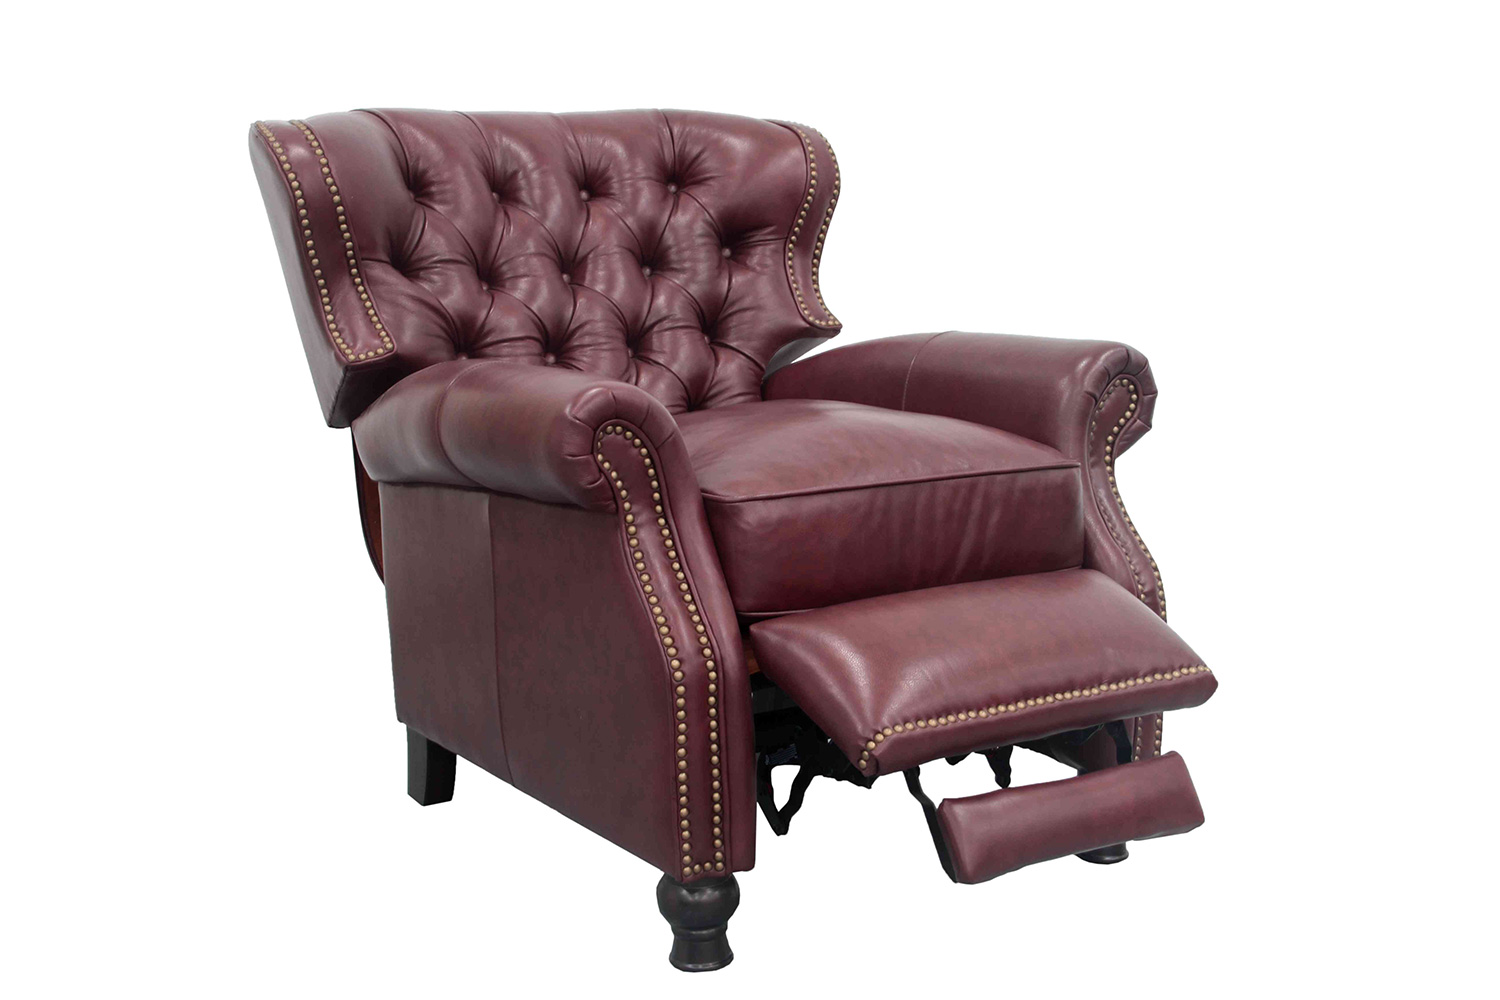 Barcalounger Presidential Recliner Chair - Shoreham Wine/All Leather